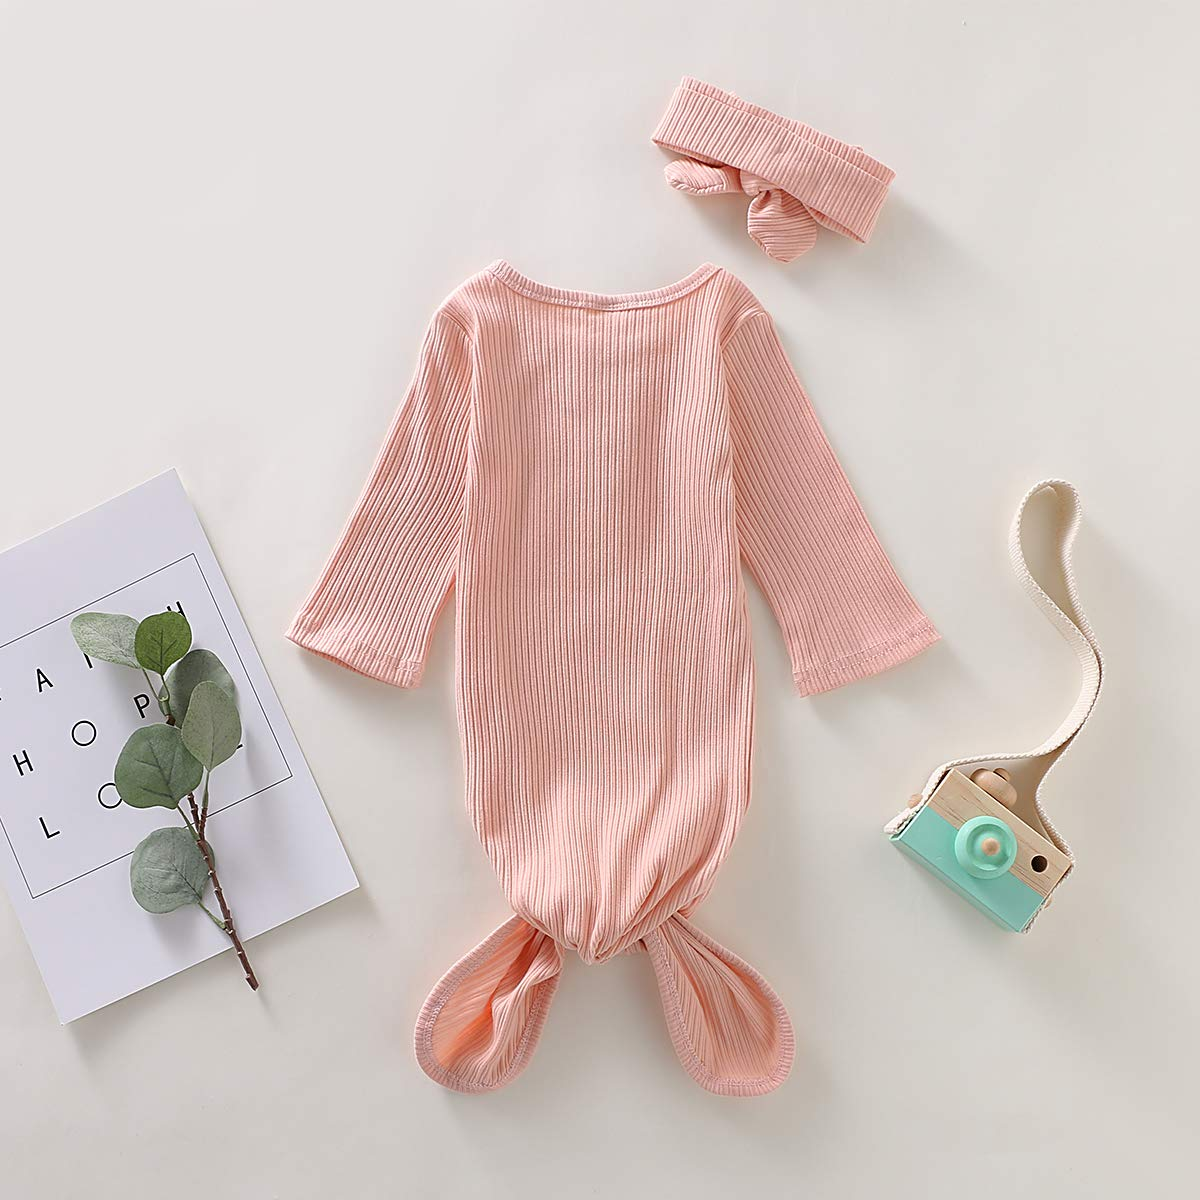 Noubeau Baby boy Girl Striped Cotton Sleeper Gowns with Cap Long Knotted Sleeping Bag Pajamas